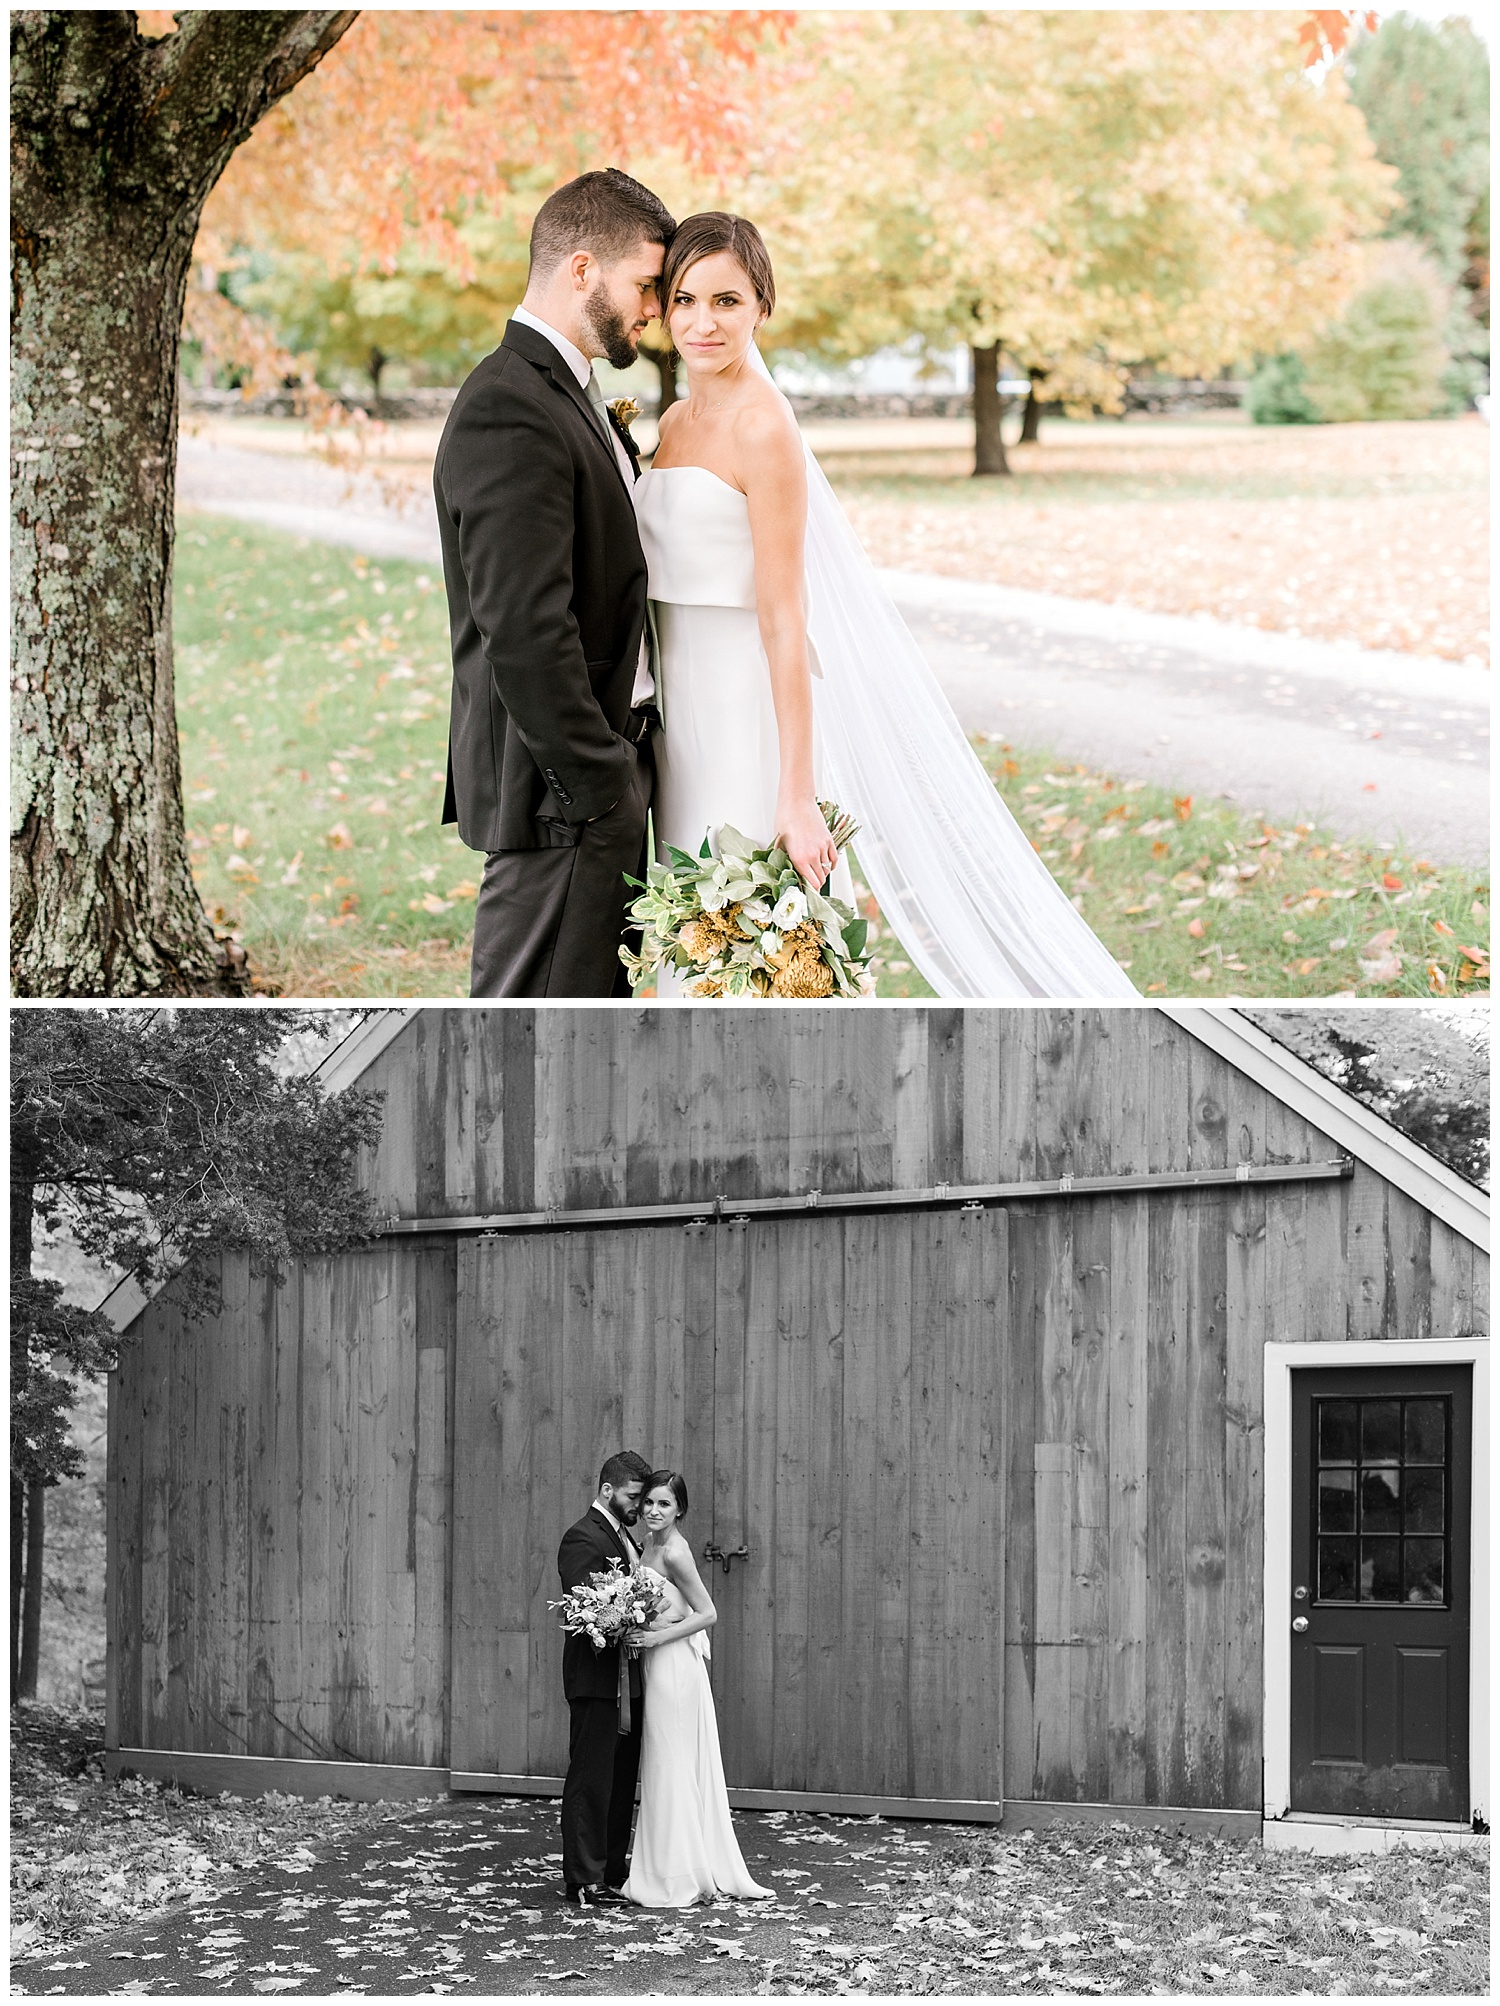 pompositticut-farm-fall-wedding-photography-hudson-massachusetts-photo-30.jpg